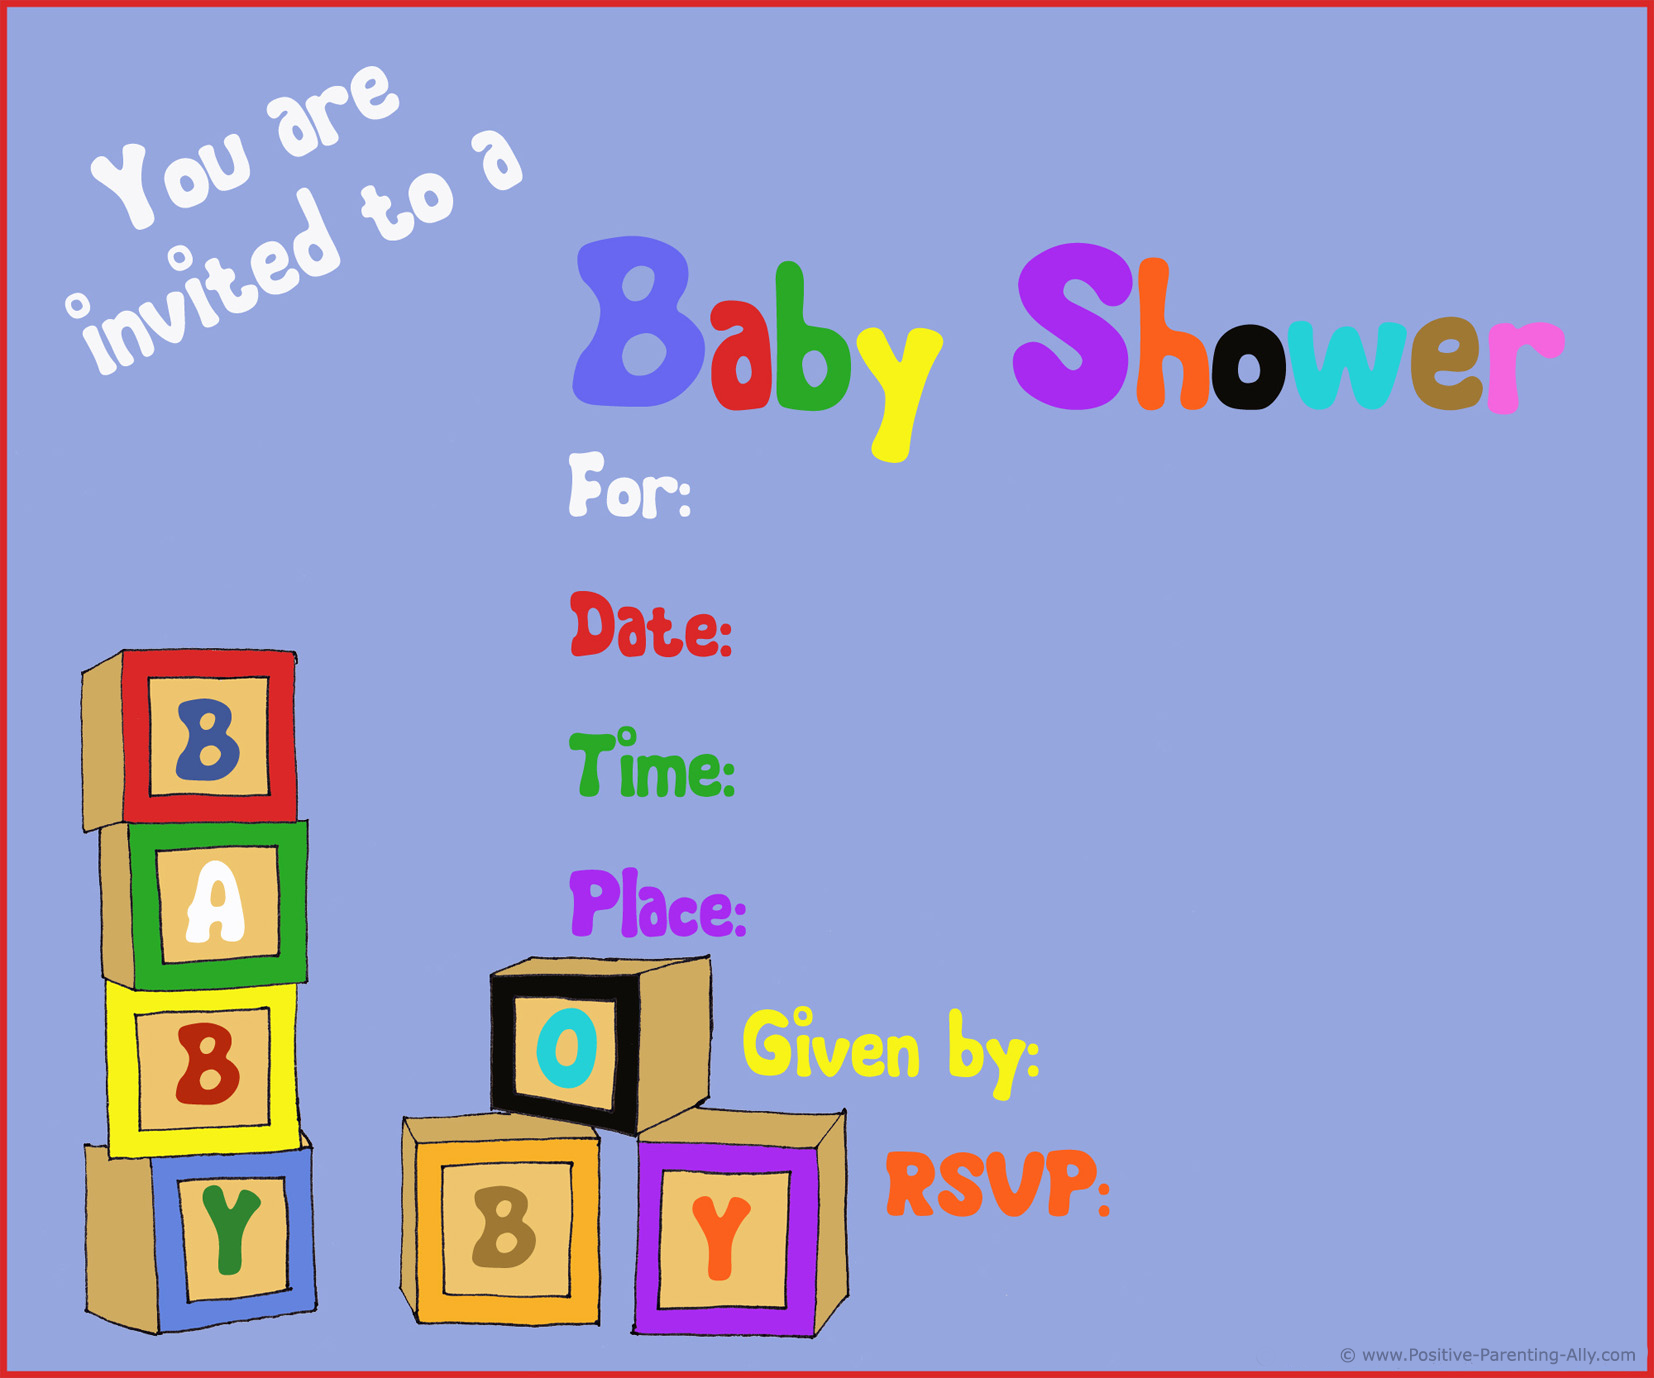 Printable Baby Shower Invitations With Toy Blocks For Boys